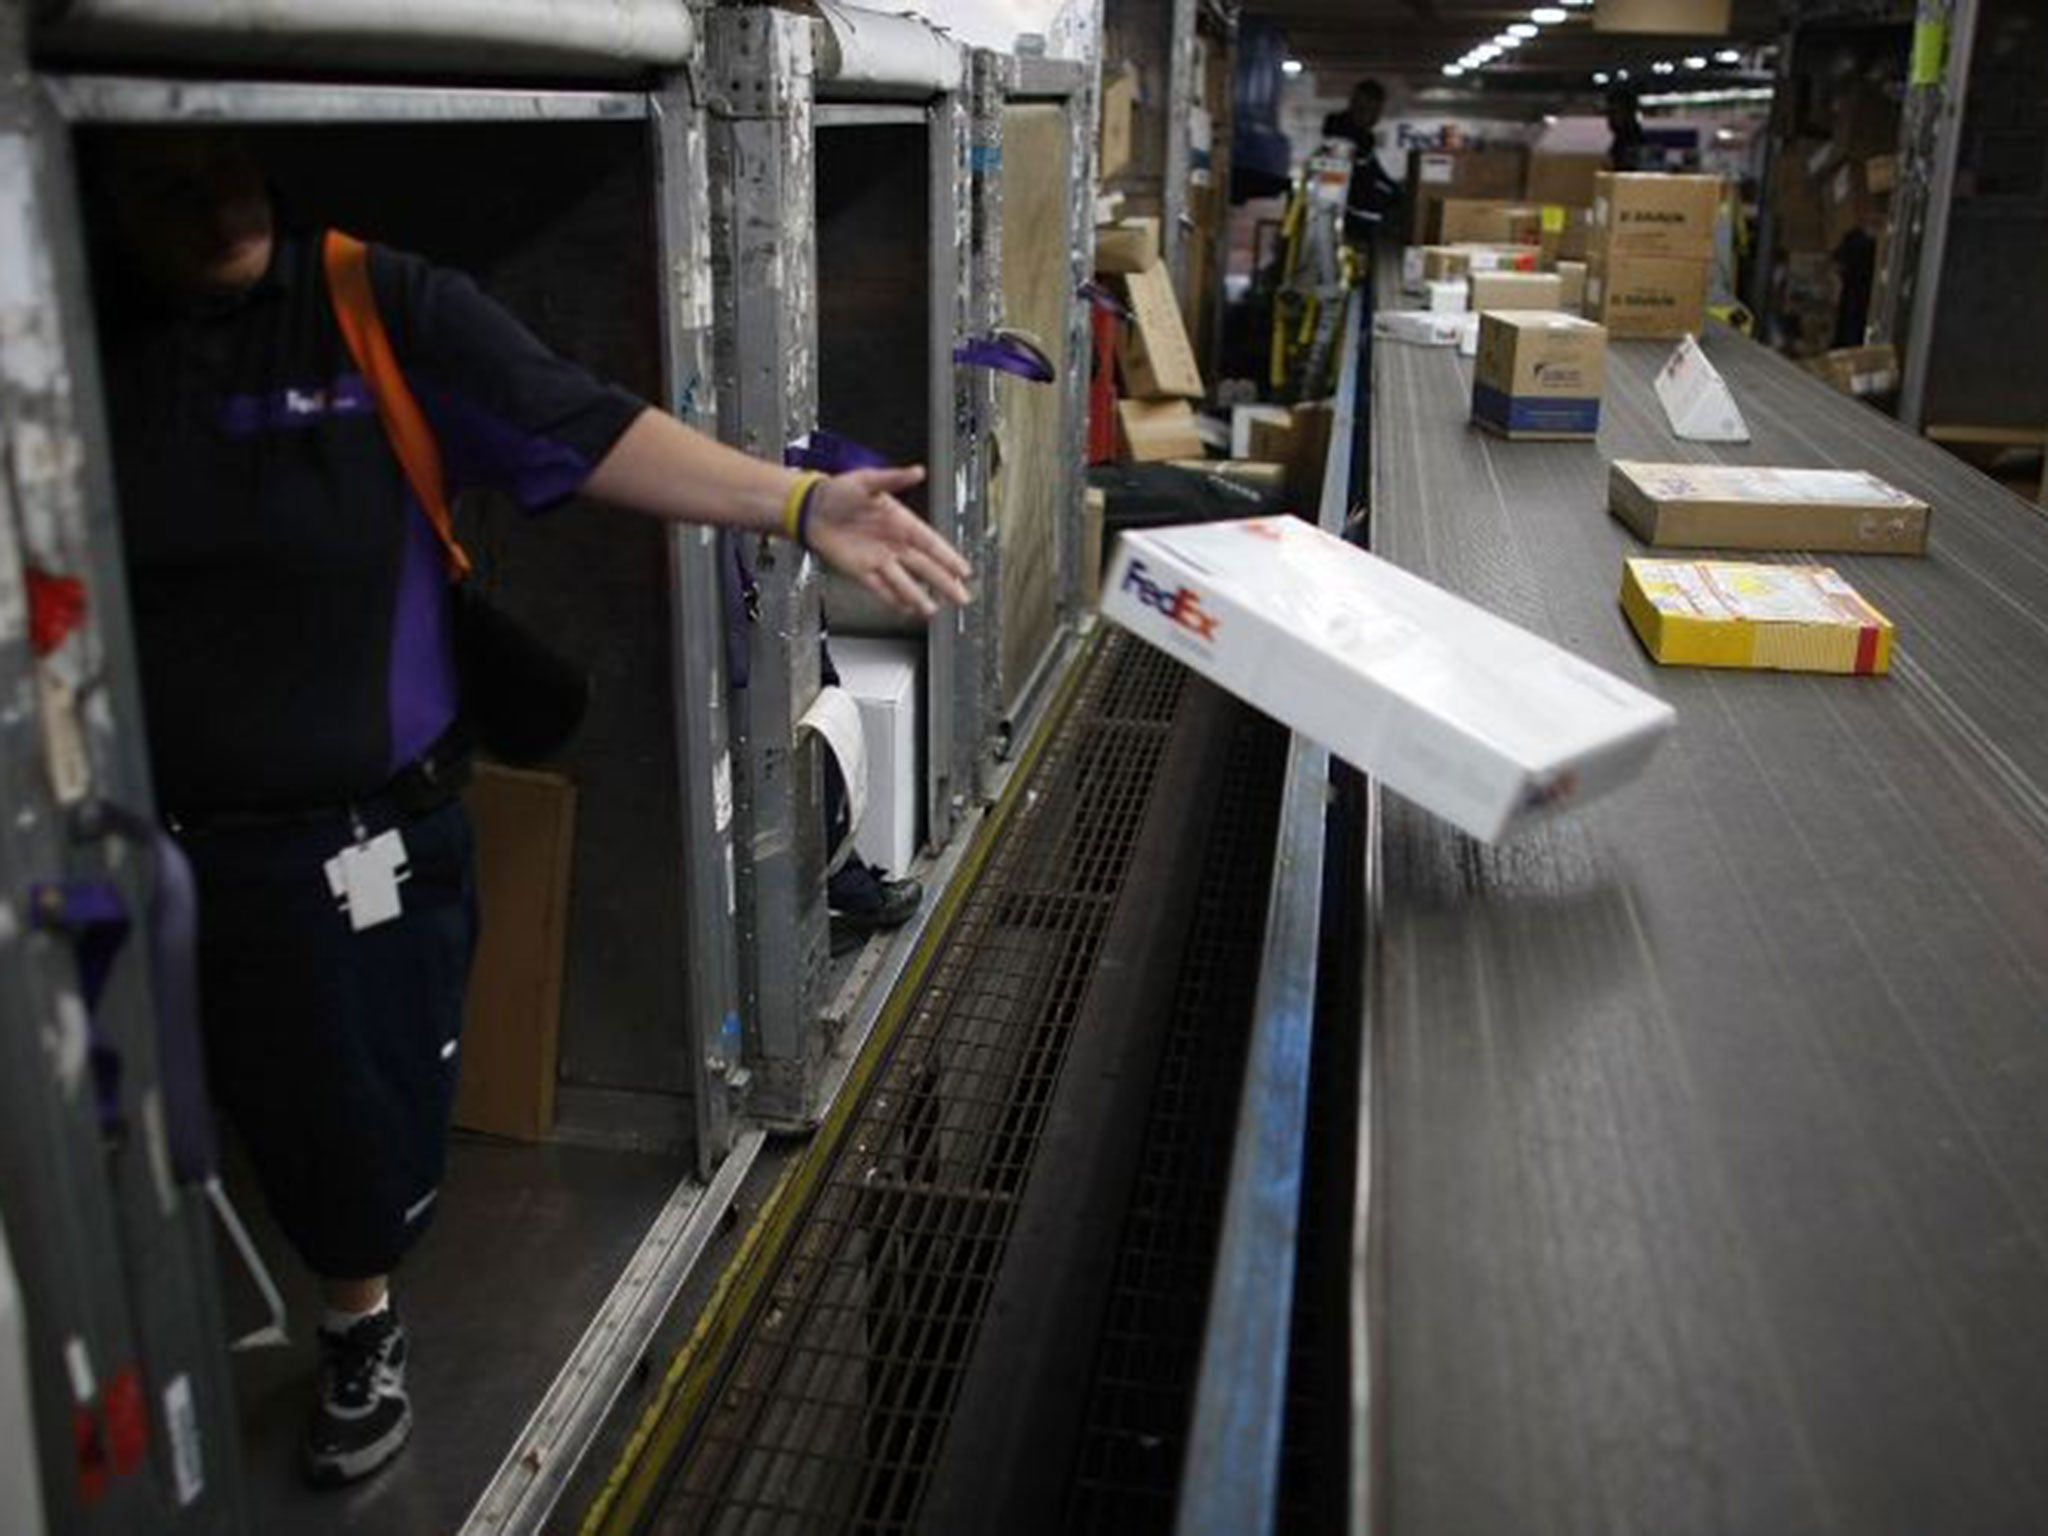 FedEx accused of trafficking illegal prescription drugs from online